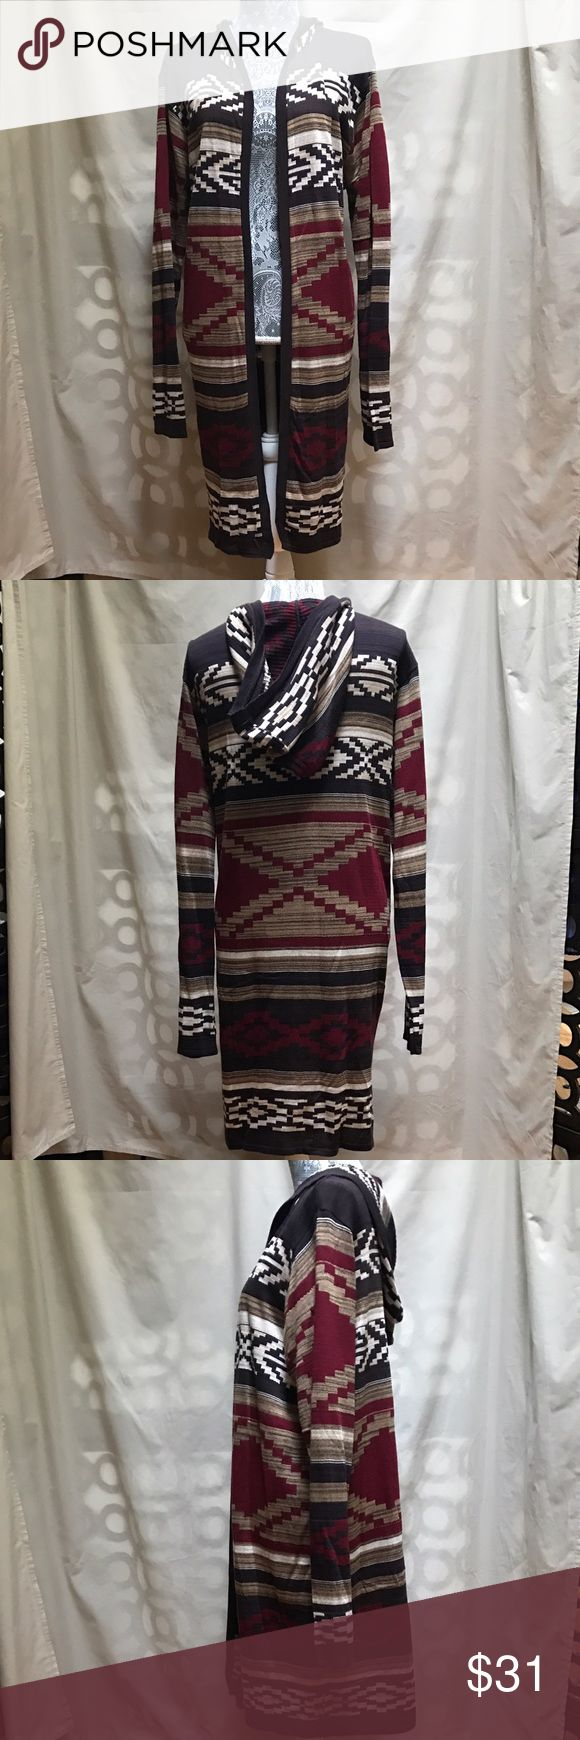 CENY Women's Tribal Print Long Knit Cardigan 3X CENY Women's Brown Tribal Print Long Hooded Sweater Knit Cardigan Shrug 3X. This is a warm, cozy long sleeve, hooded sweater which looks great with jeans and boots. EUC, no rips tears odors or stains. CENY Sweaters Cardigans